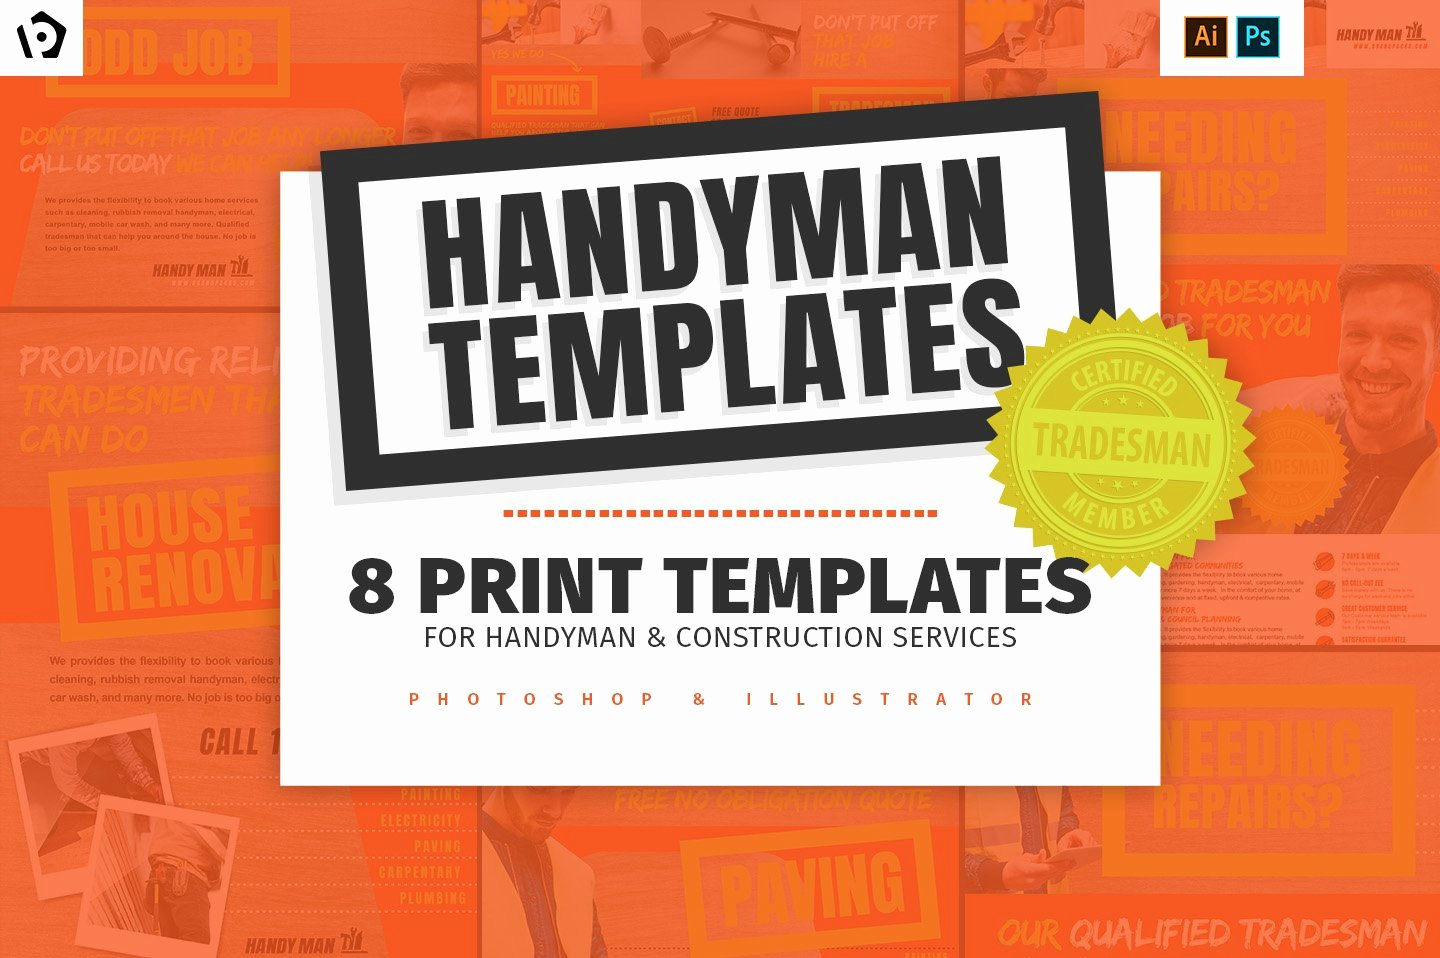 Free Handyman Flyer Templates Fresh Handyman Templates Pack V2 Flyer Templates Creative Market